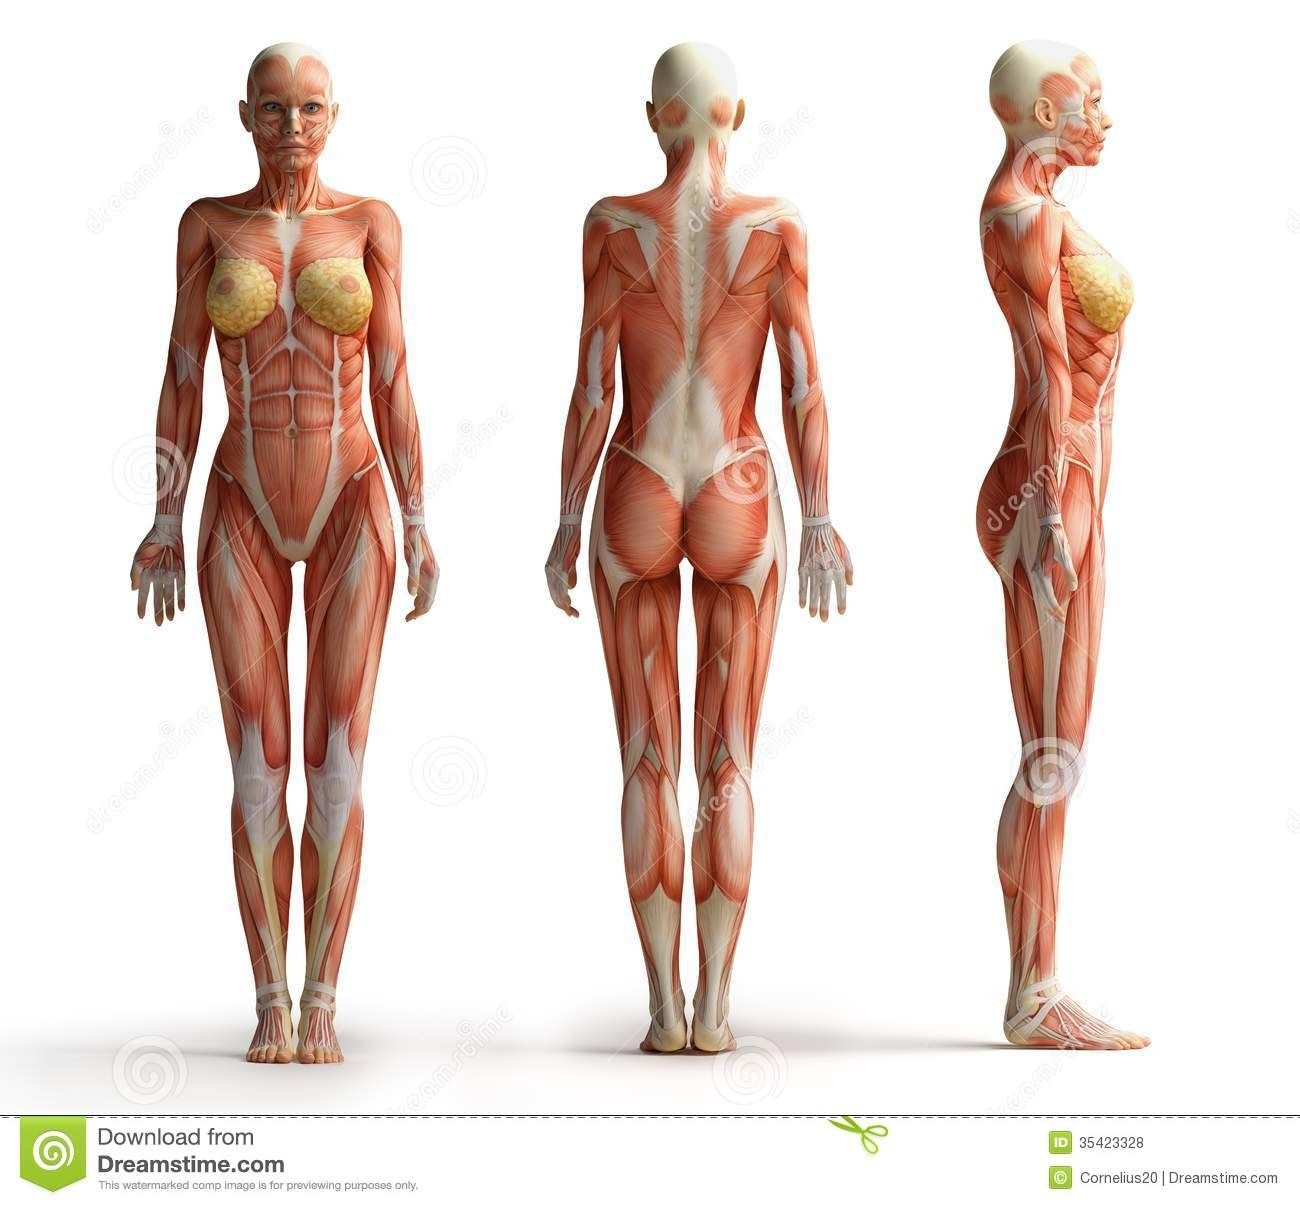 The Muscle Structure In Human Body Of Female Anatomy Of Woman Muscle